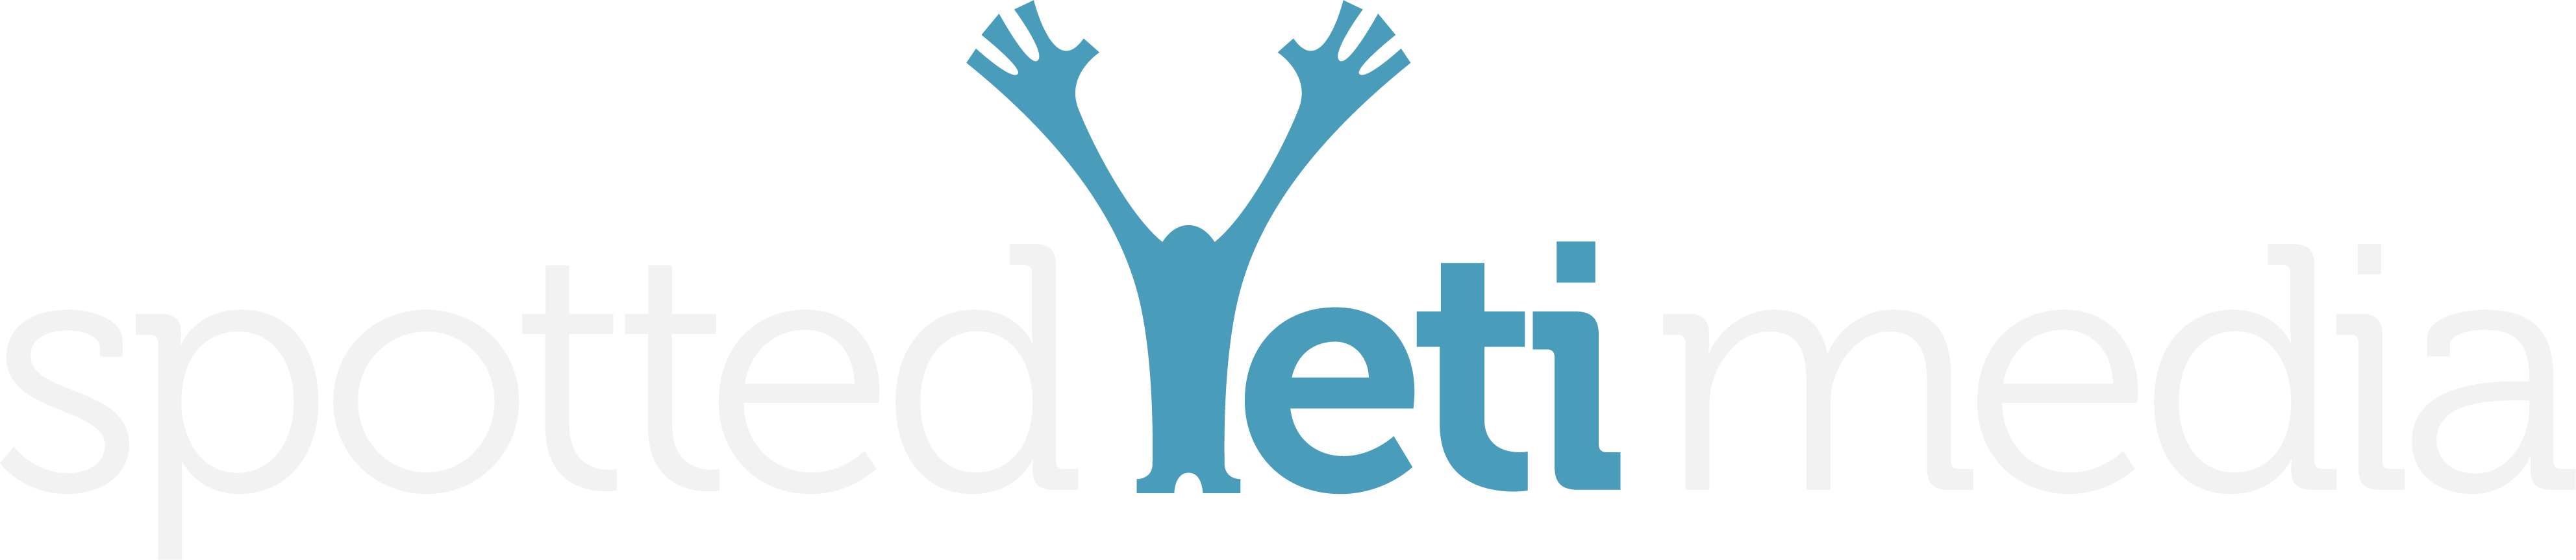 Spotted Yeti Media Video Production Logo